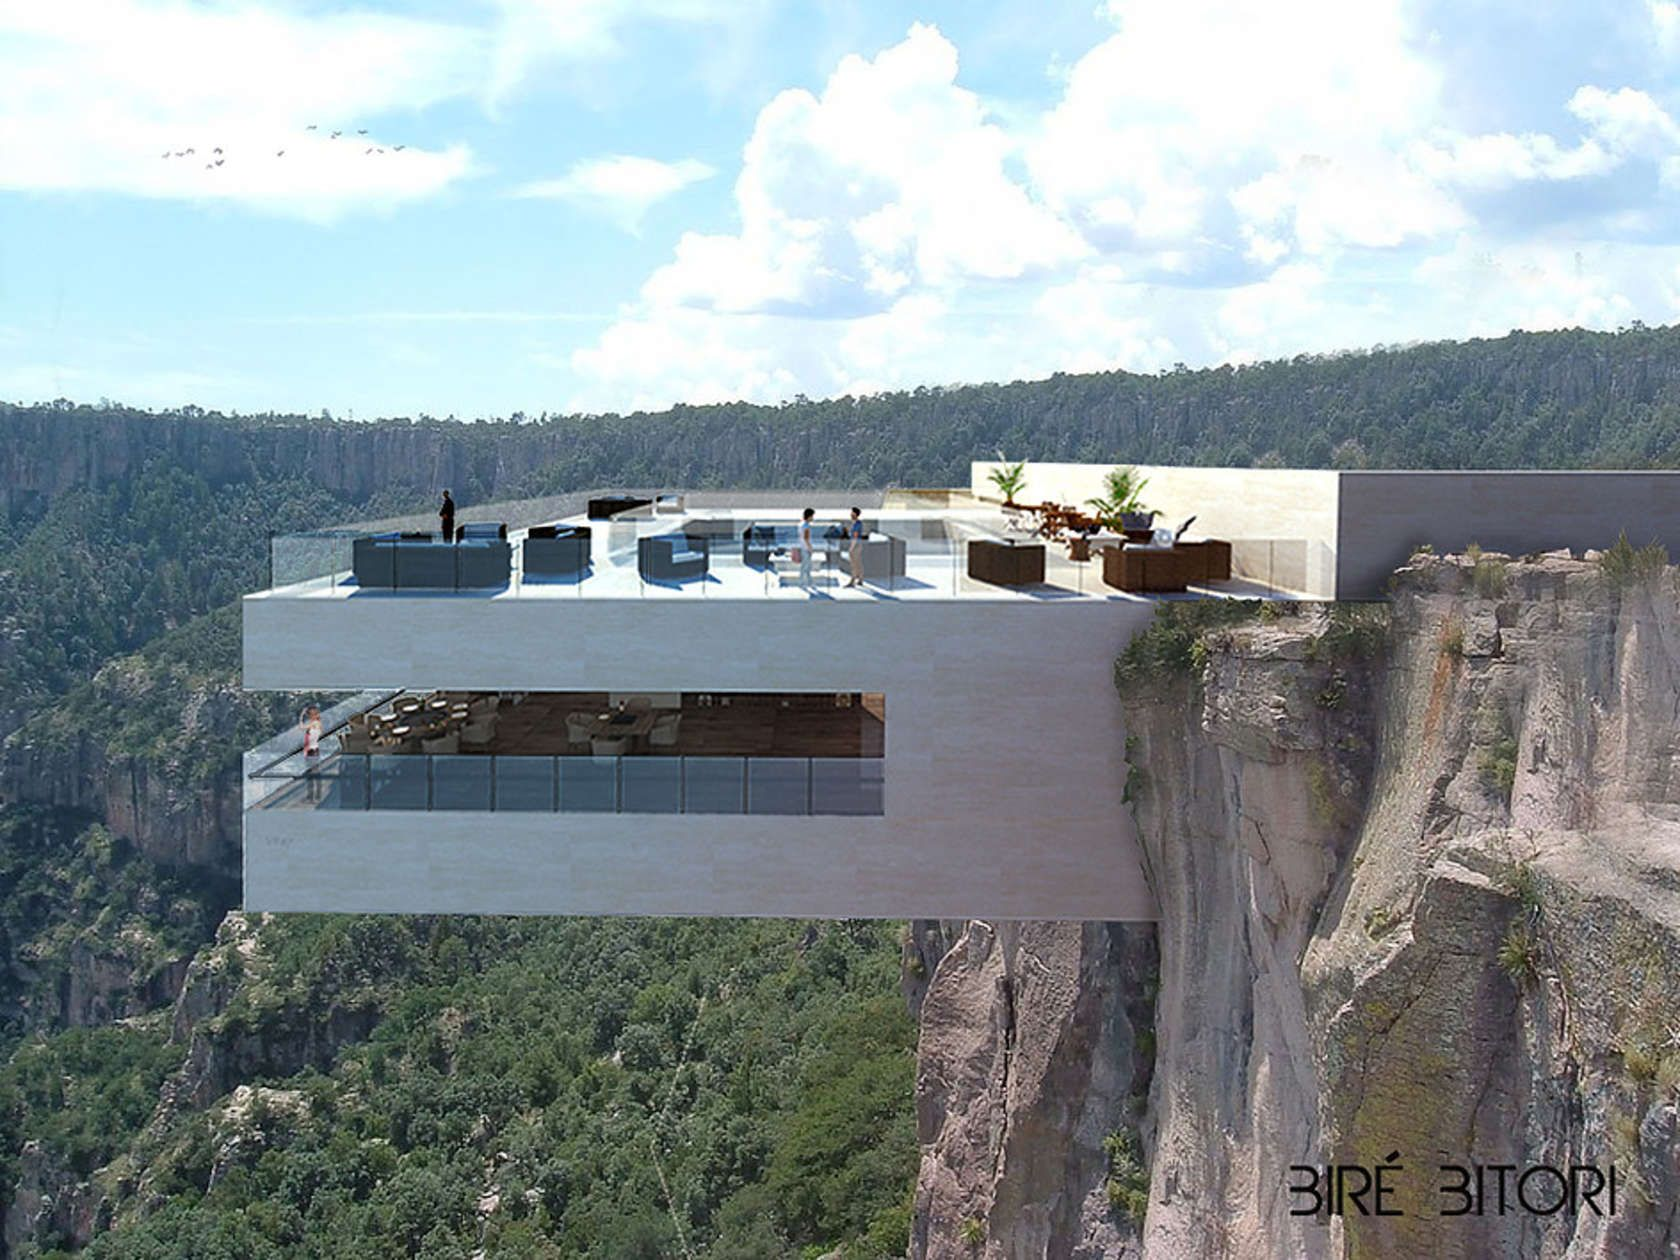 On The Edge A Cantilevered Restaurant Overhangs Mexico S